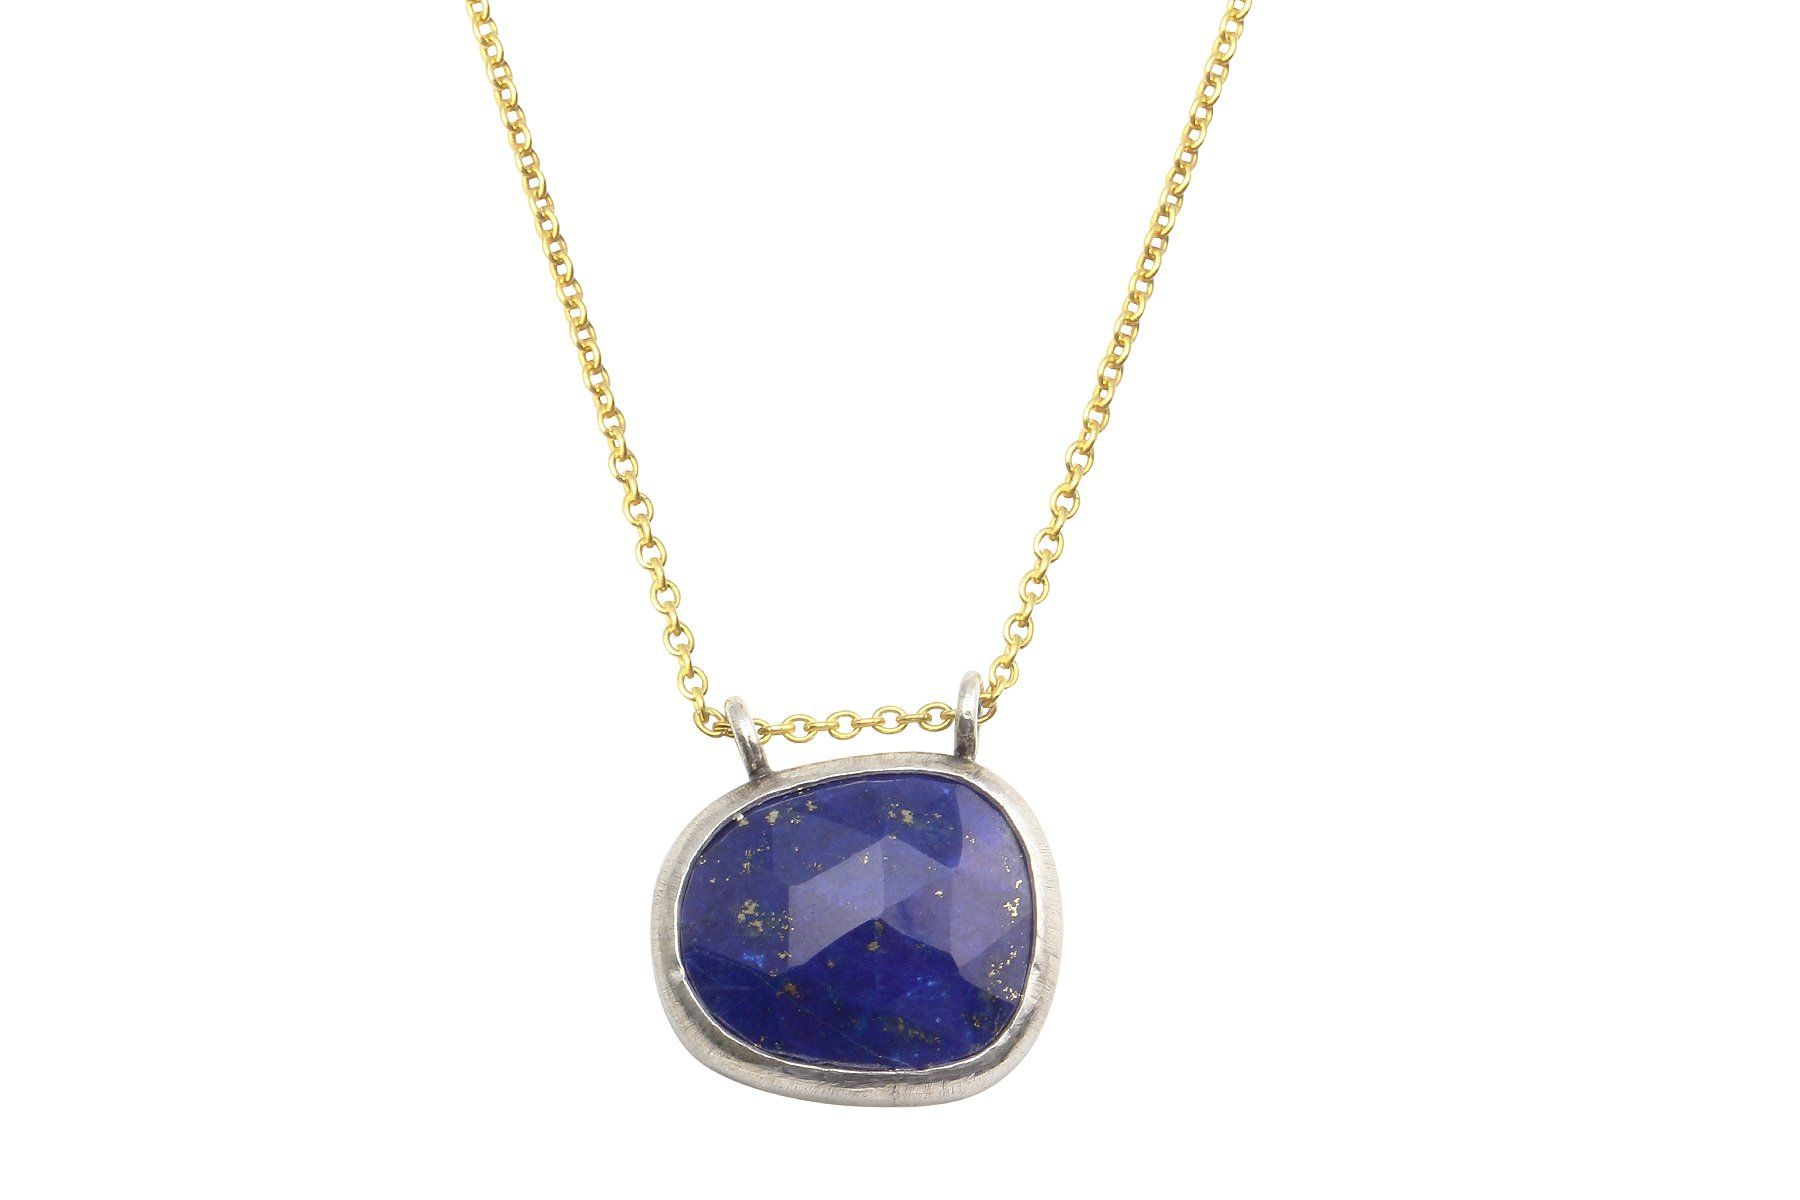 Rosecut lapis lazuli sterling silver necklace - Amanda K Lockrow